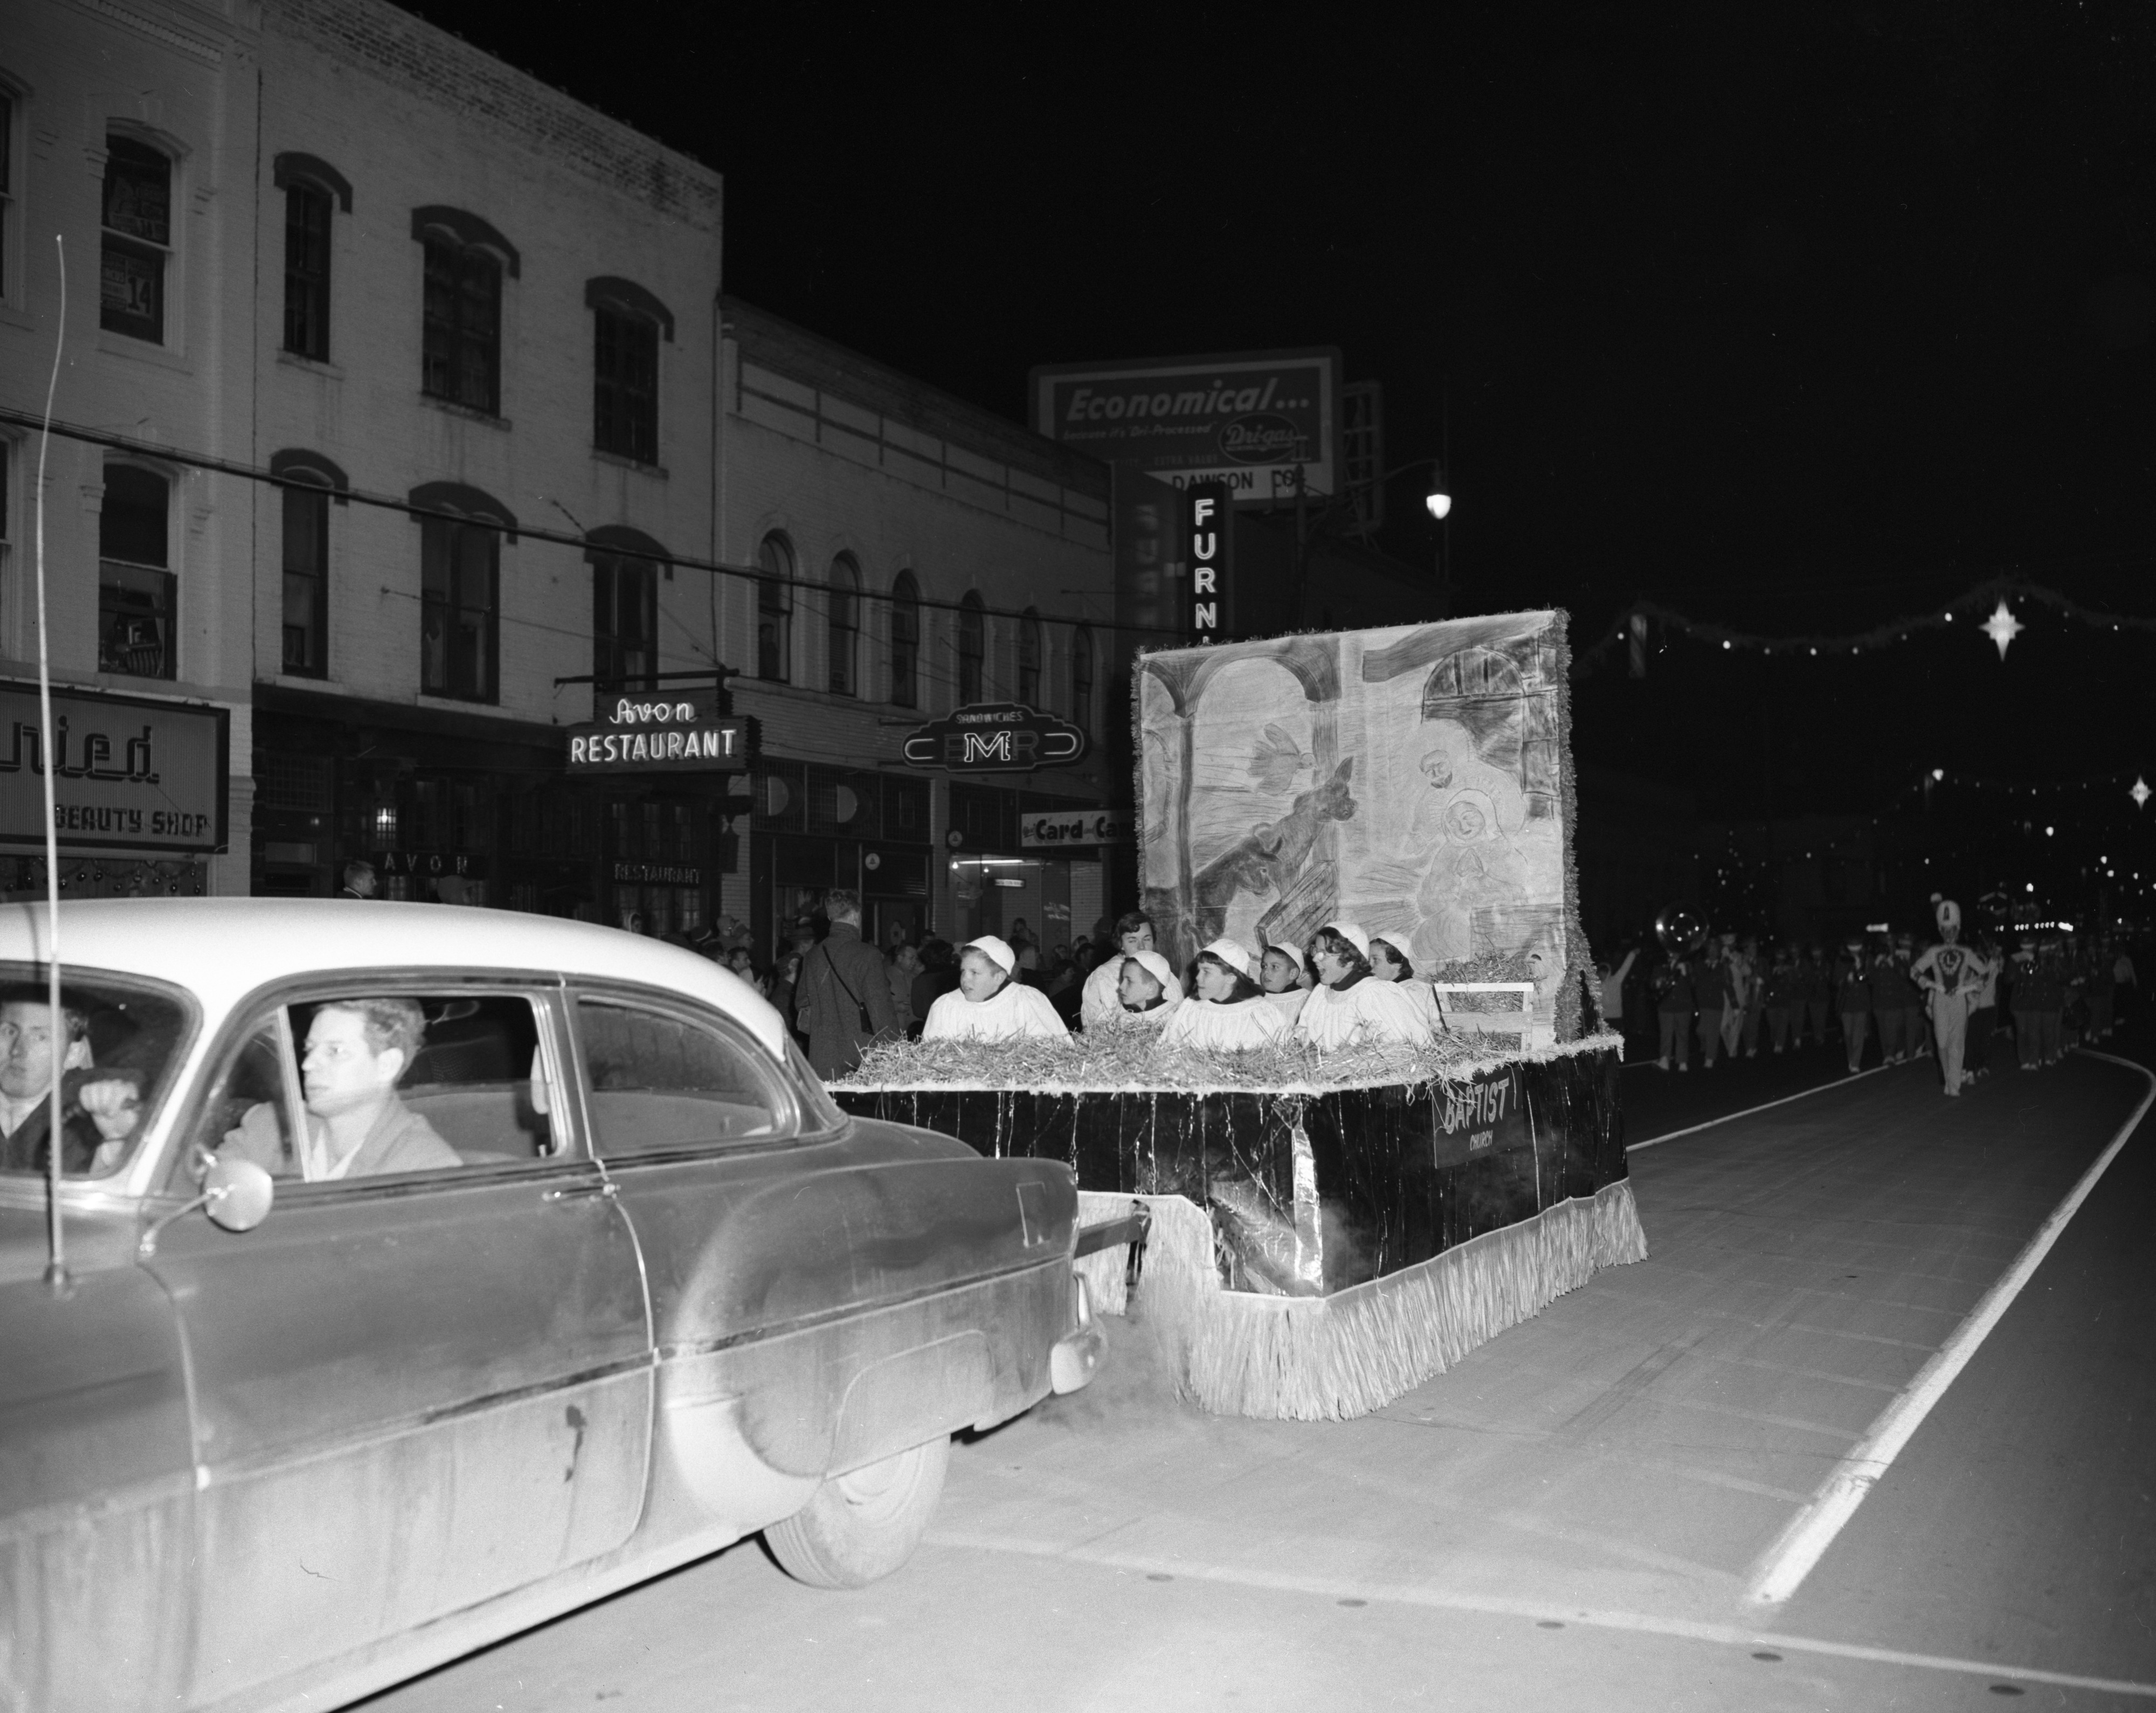 """Away in a Manger"" float, sponsored by First Baptist Church of Ypsilanti, Ypsilanti Christmas parade, December 1957 image"